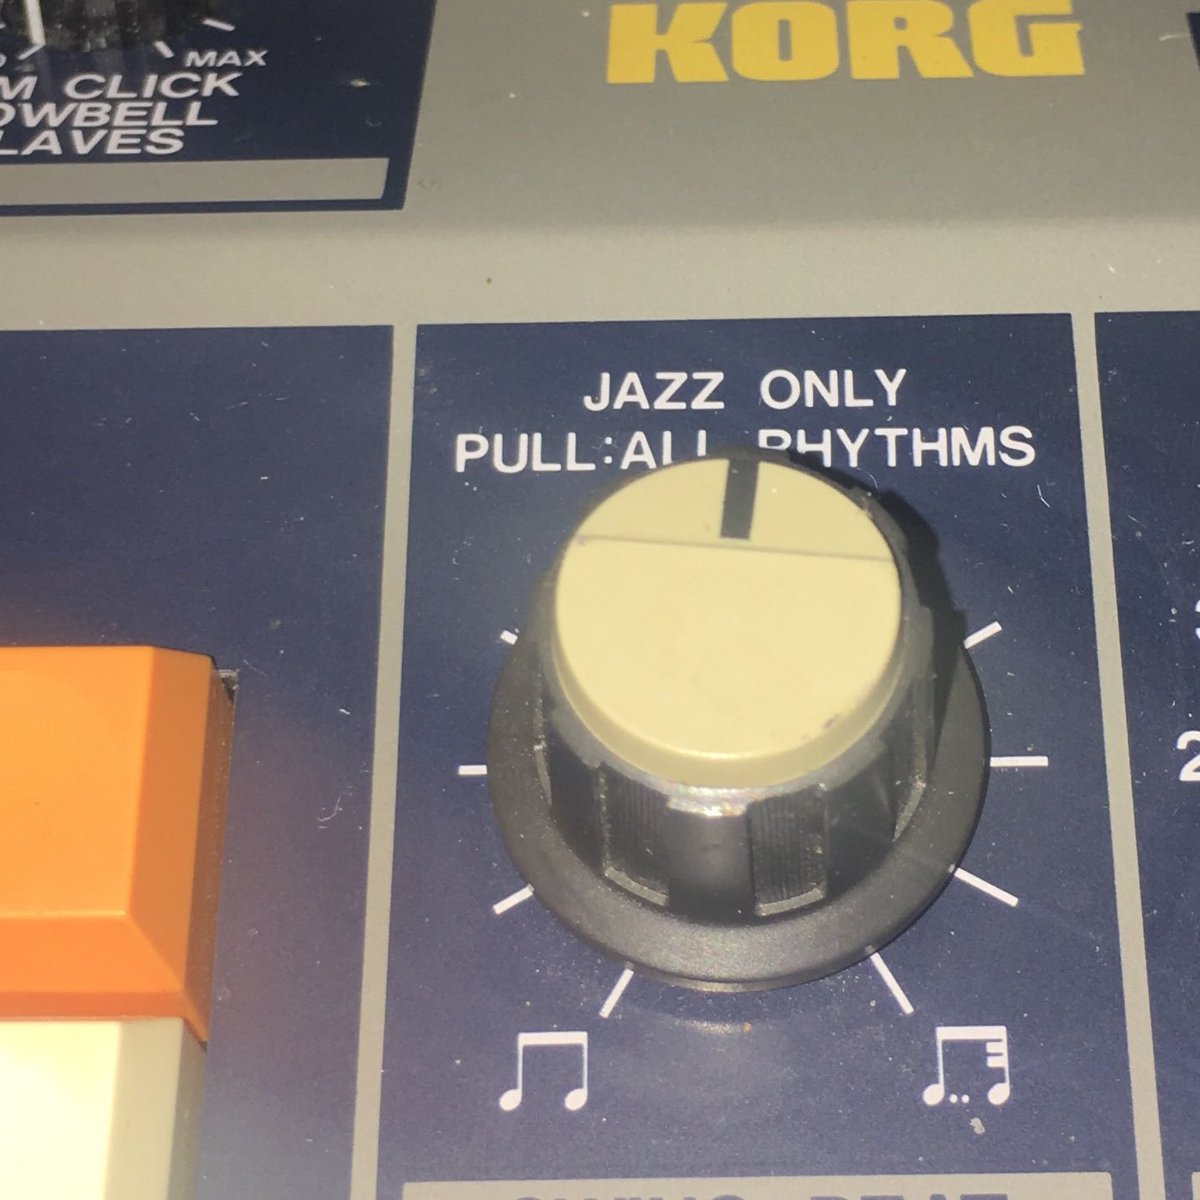 I bought a device with a jazz-only knob https://t.co/v1wa9mfQJF